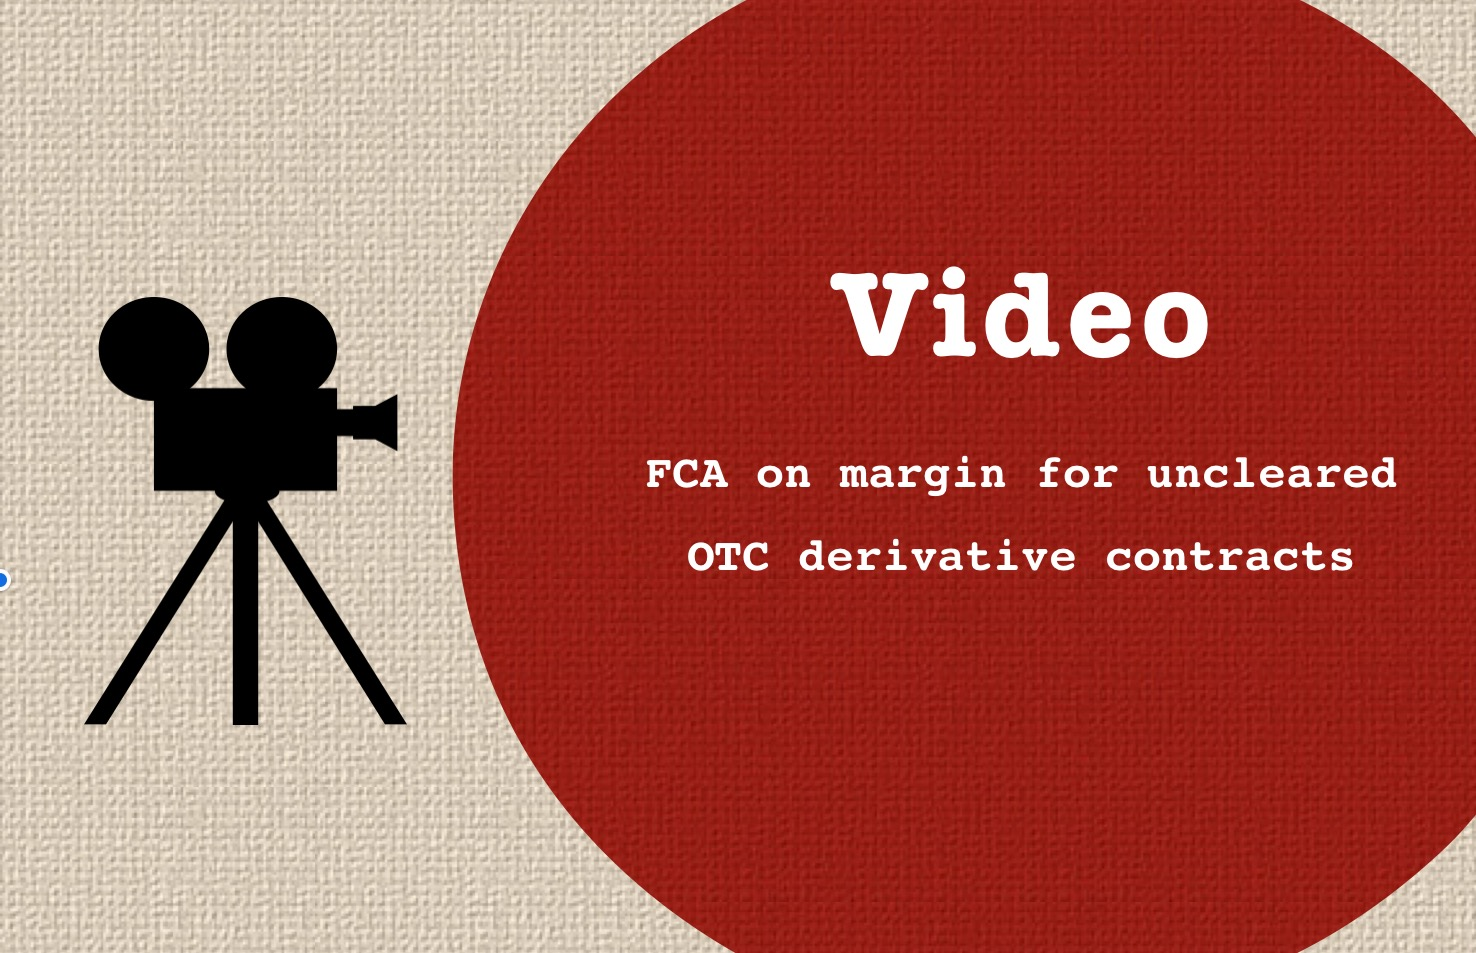 fca video Margin uncleared OTC derivative contracts